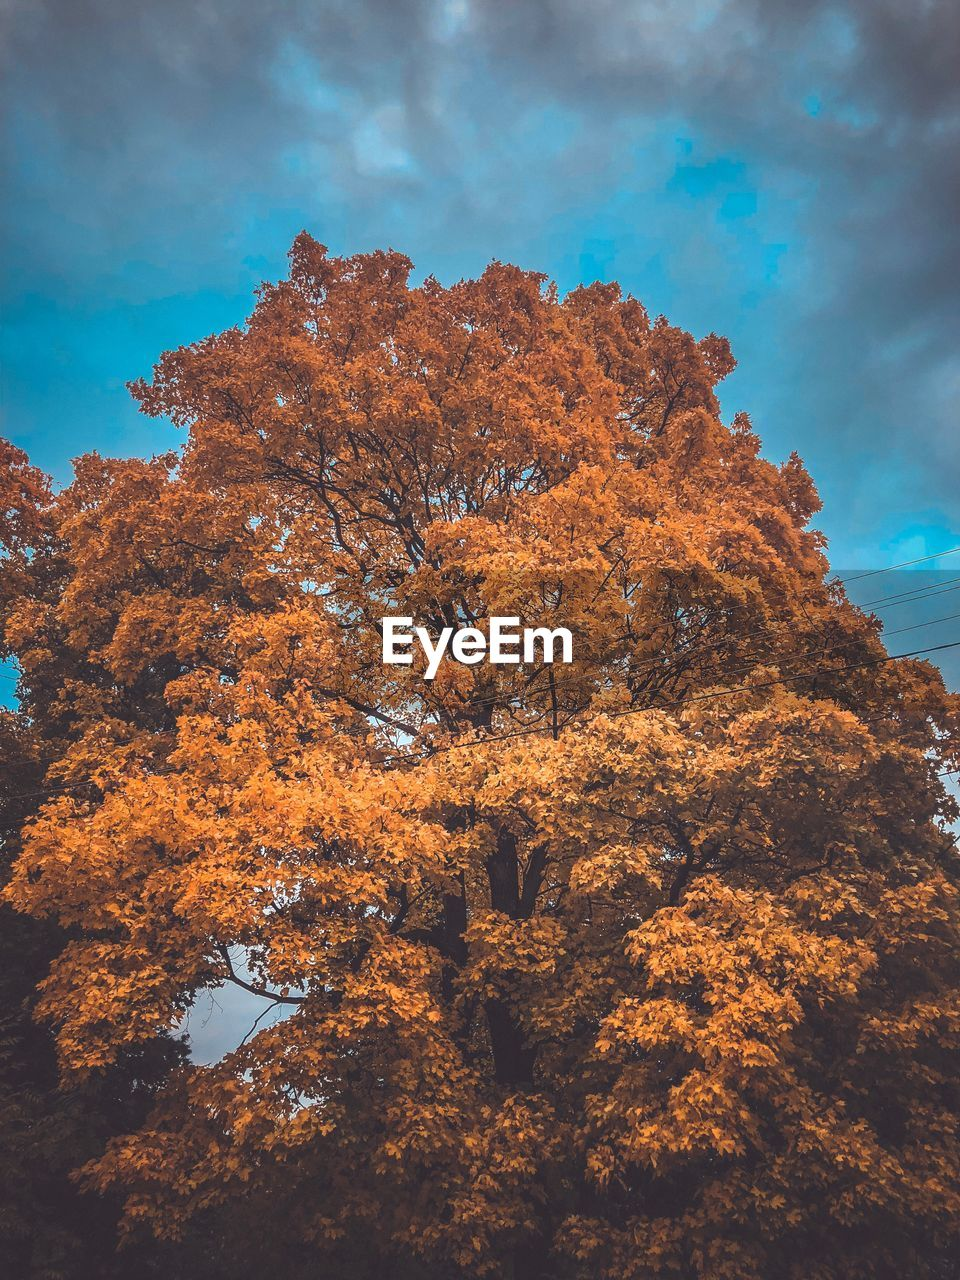 tree, autumn, sky, plant, change, cloud - sky, nature, beauty in nature, low angle view, growth, no people, day, outdoors, orange color, tranquility, branch, scenics - nature, sunlight, tranquil scene, fall